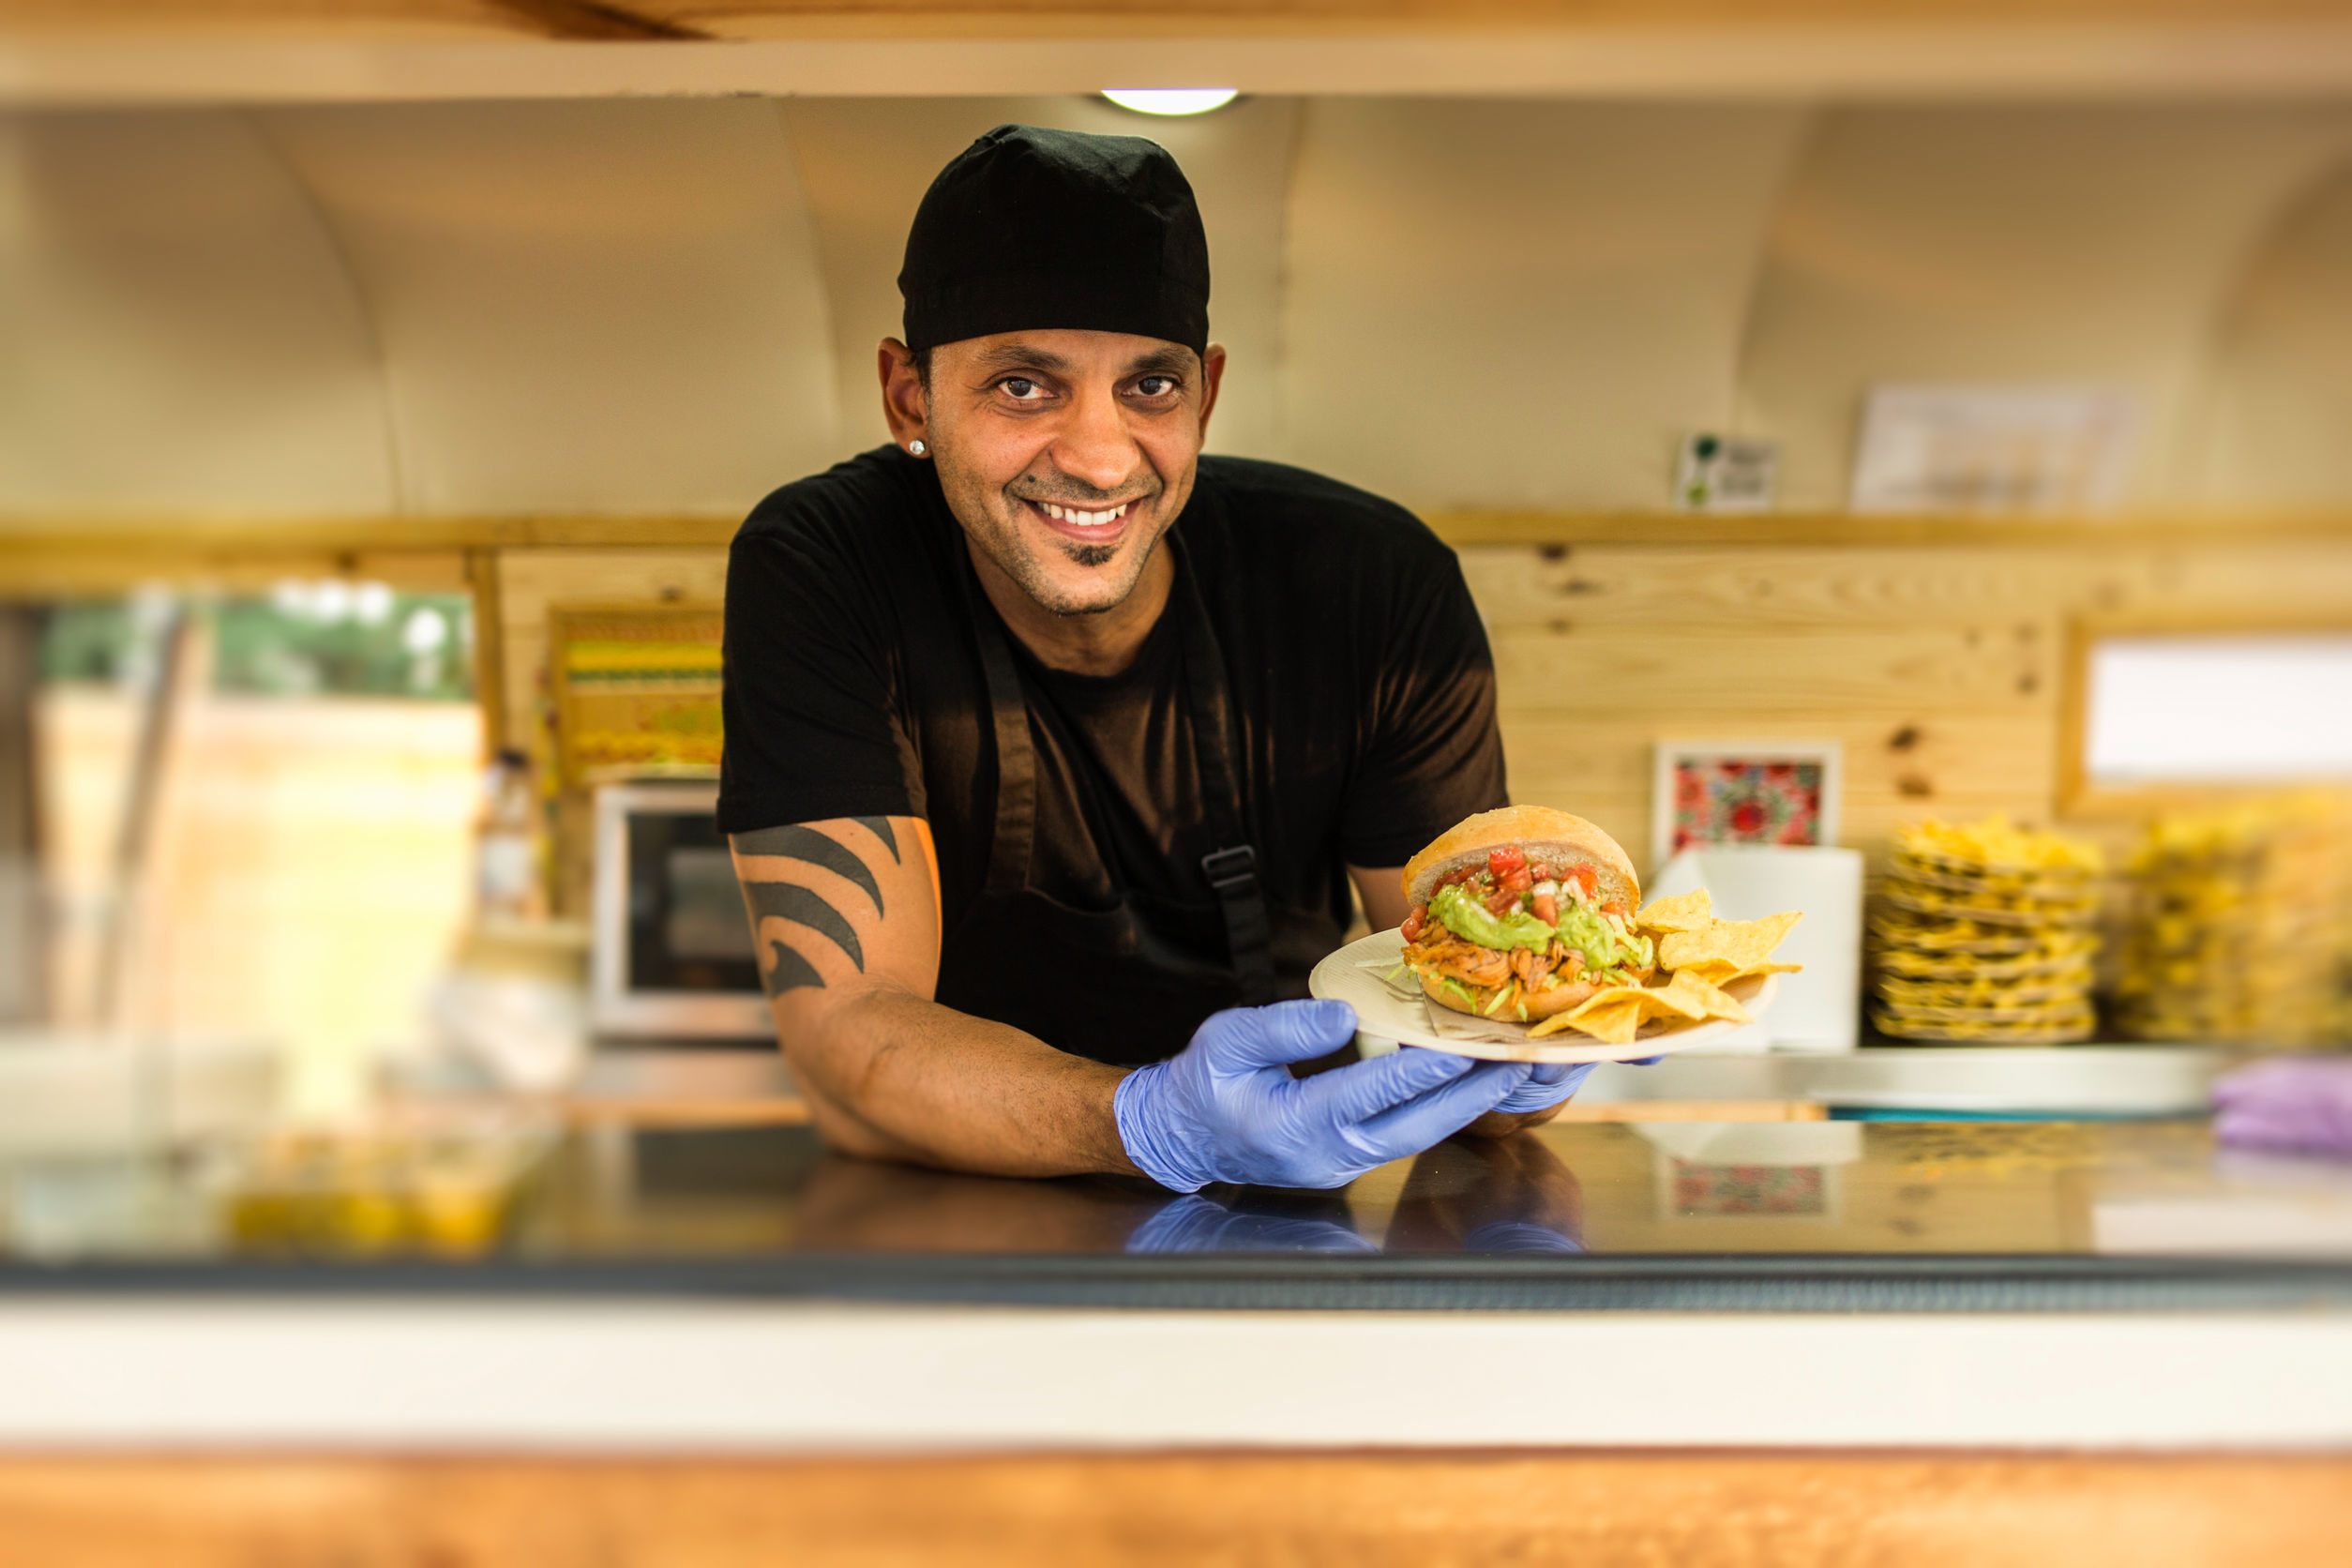 Ready to Buy a Food Truck for Your Family Business? These Tips Will Help